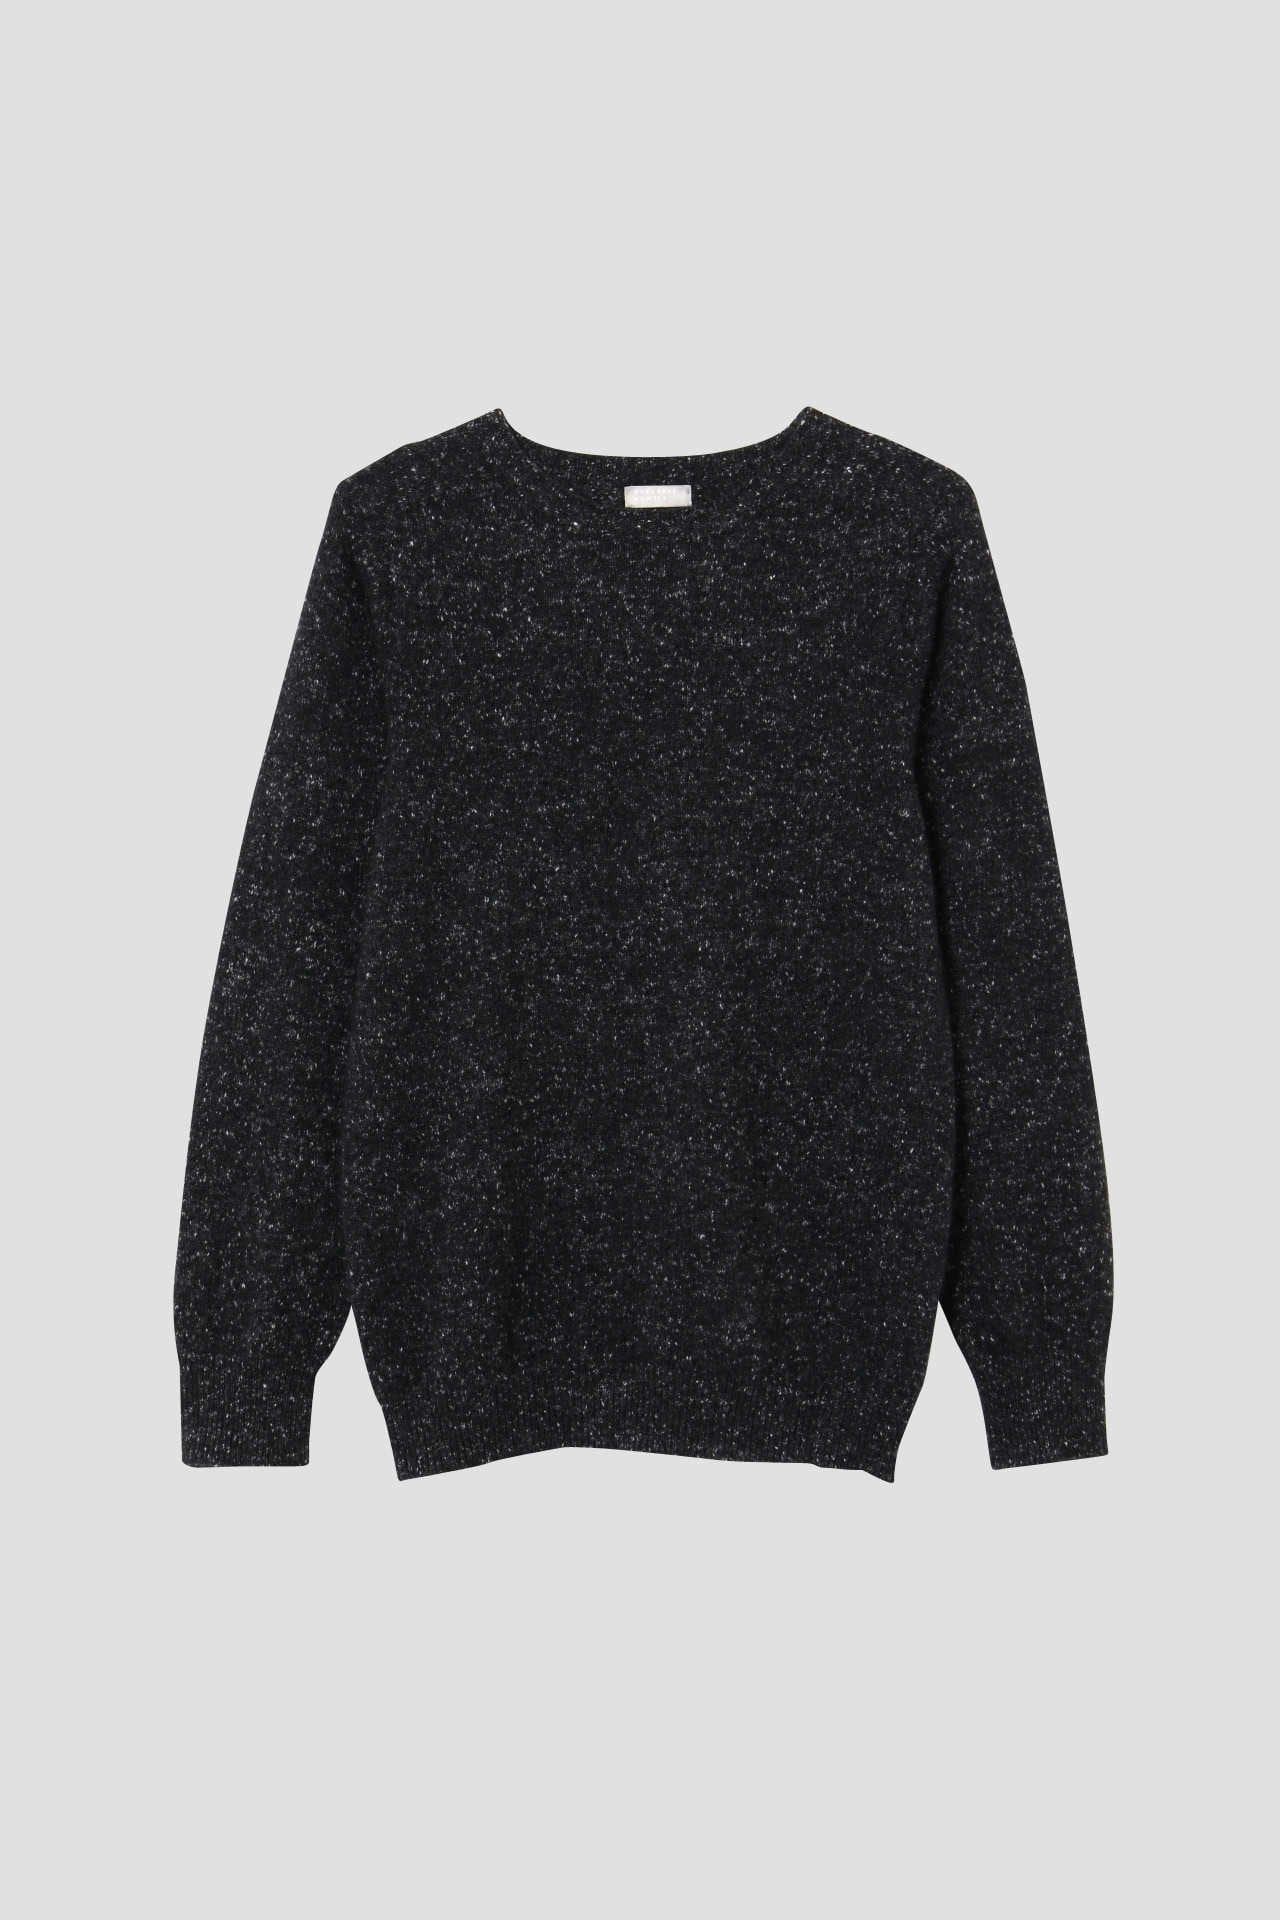 DONEGAL CASHMERE6